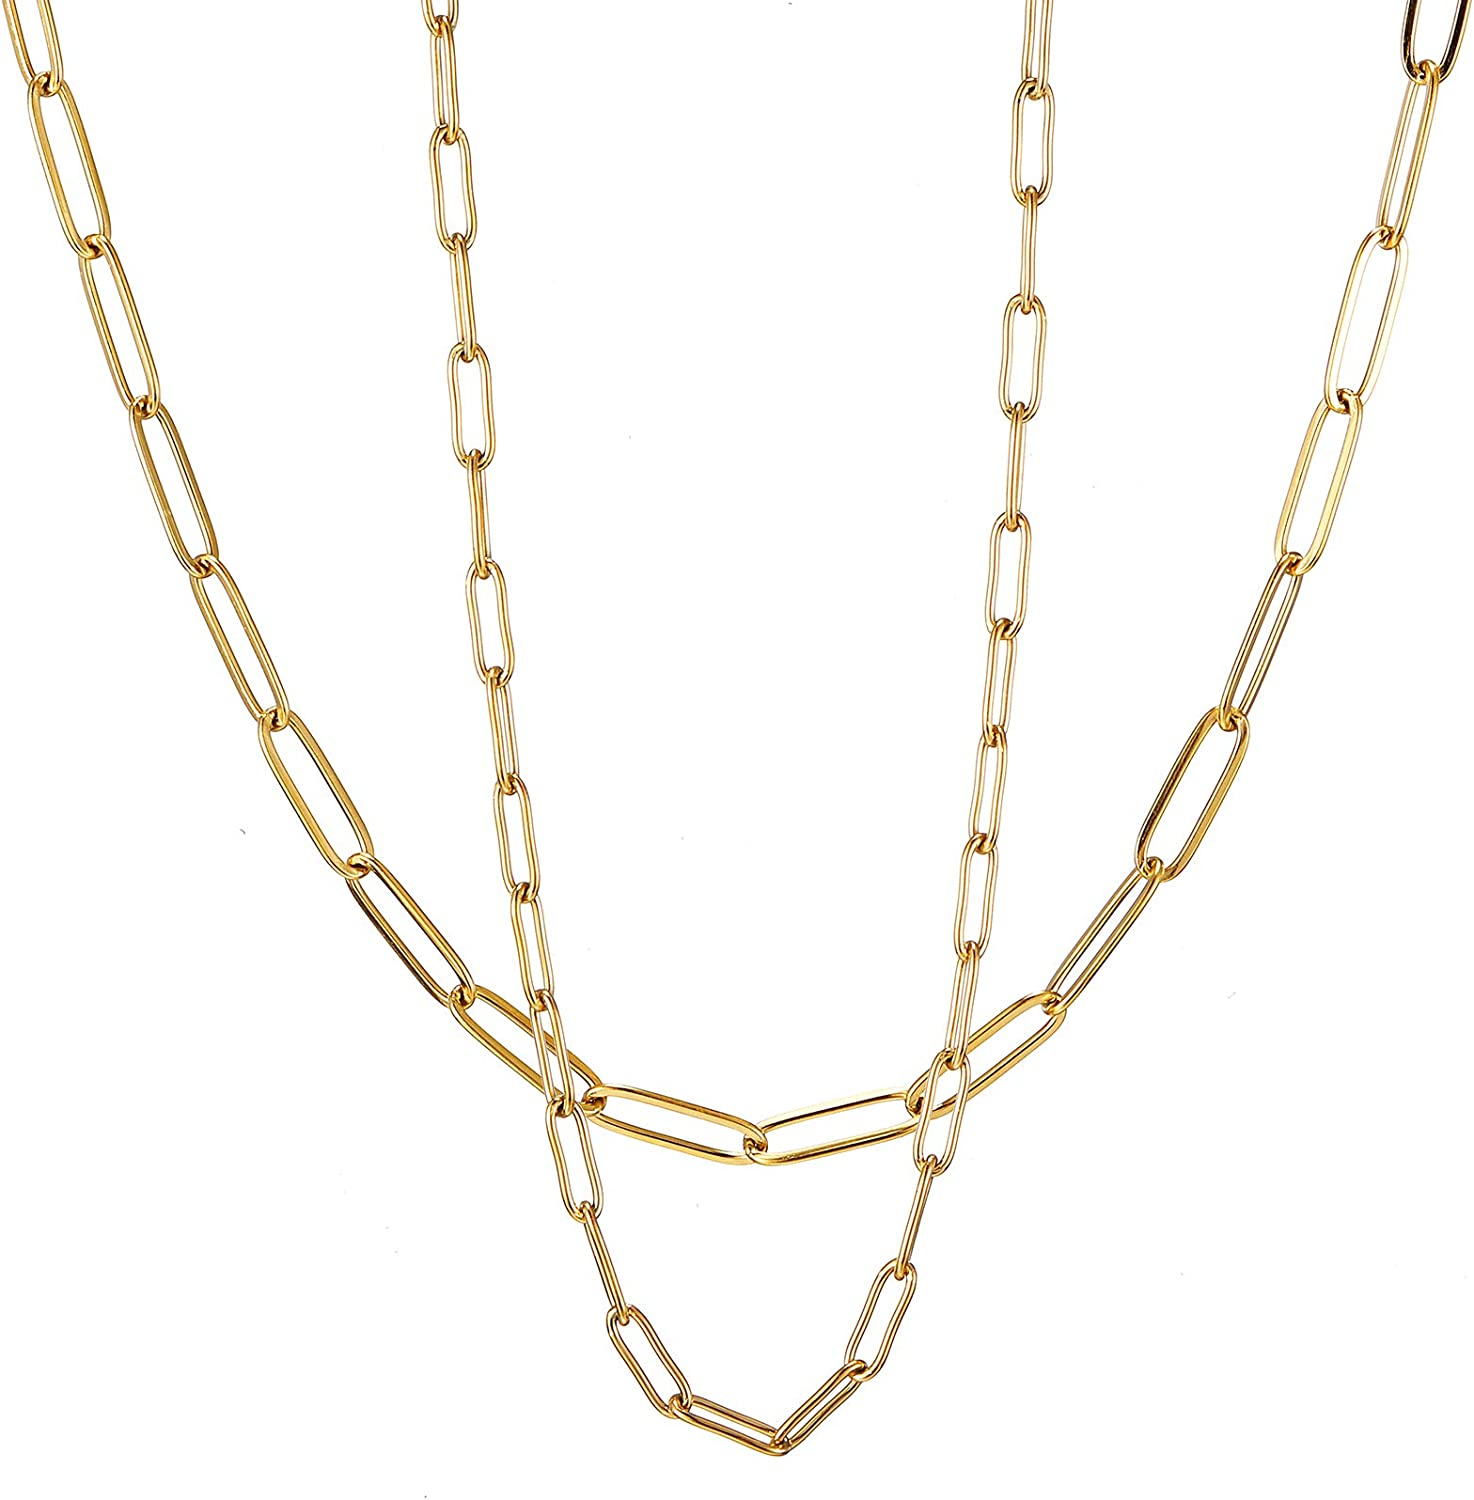 RWQIAN Special sale item 18k Gold Paperclip Chain Dainty Link L Max 89% OFF Necklace